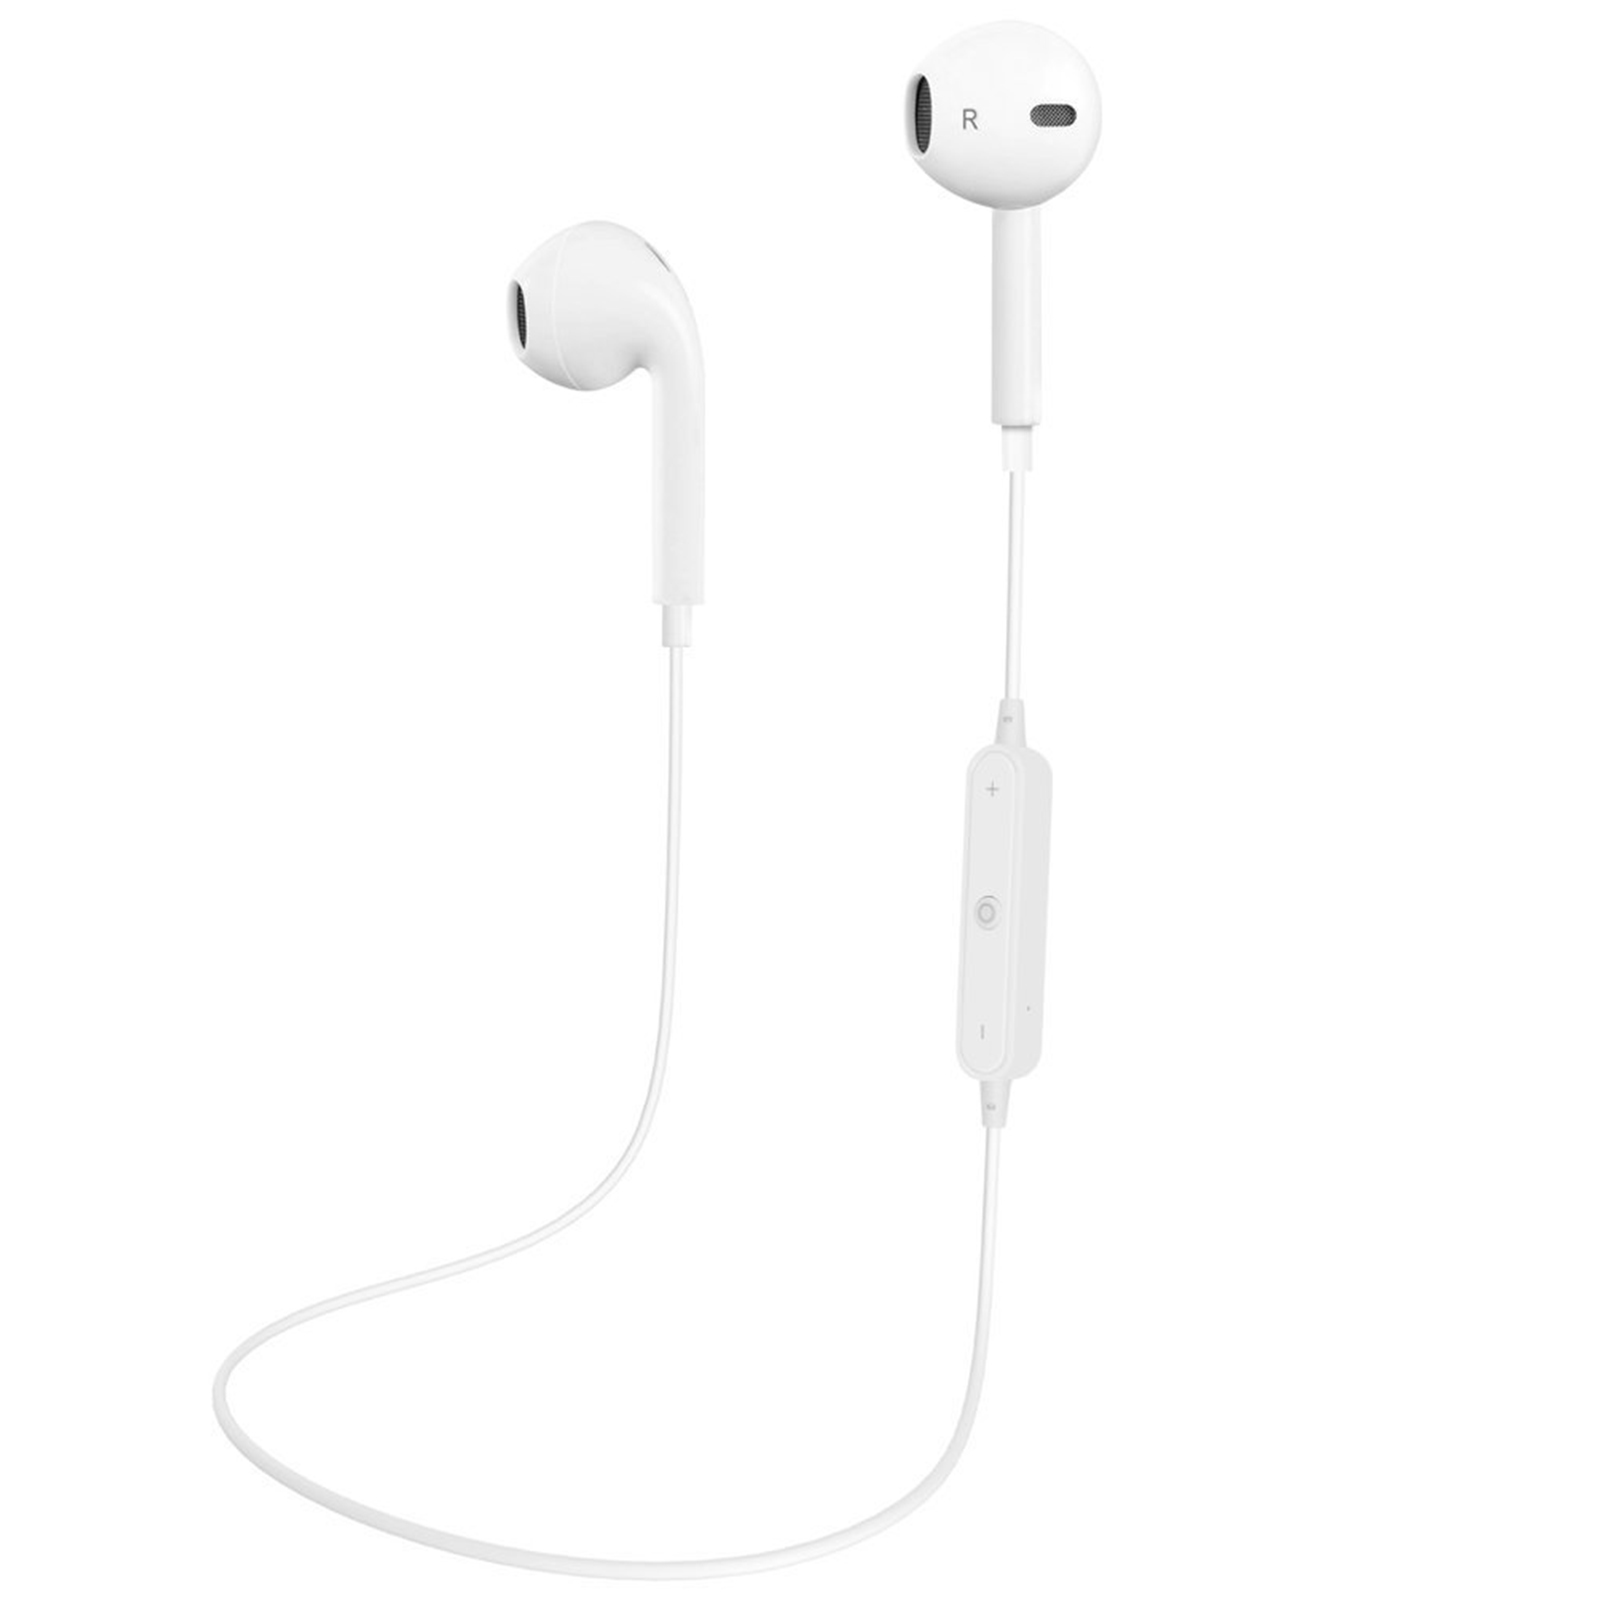 Iphone x accessories earbuds - running earbuds iphone x